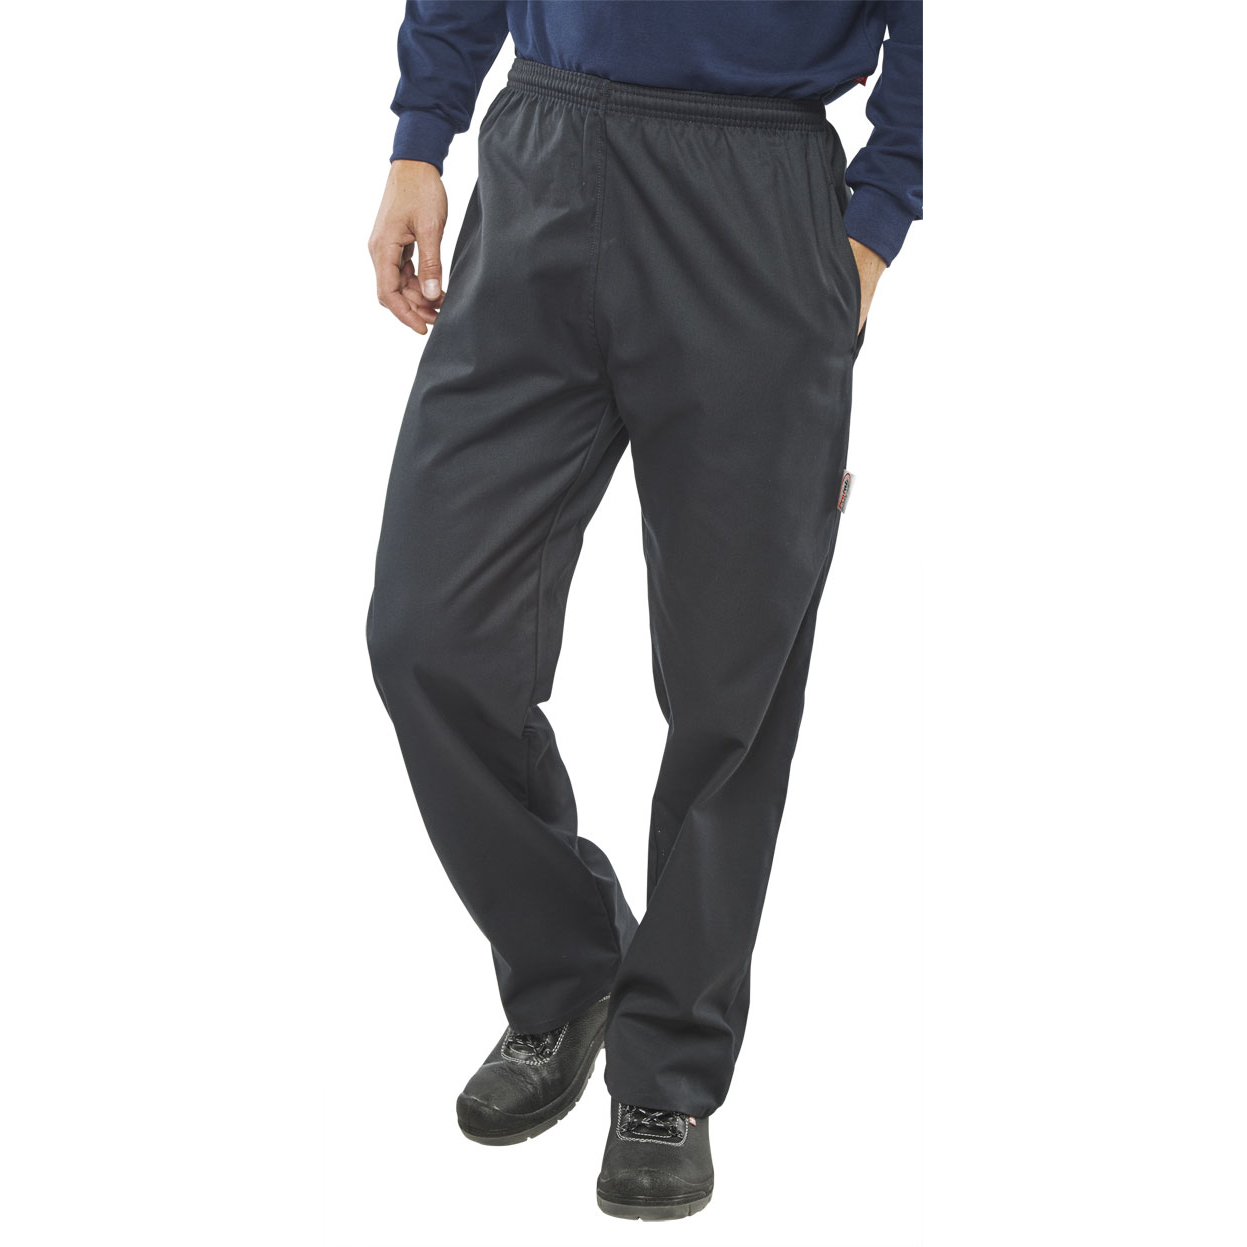 Fire Retardant / Flame Resistant Click Fire Retardant Protex Trousers 3XL Navy Blue Ref CFRPTNXXXL *Up to 3 Day Leadtime*